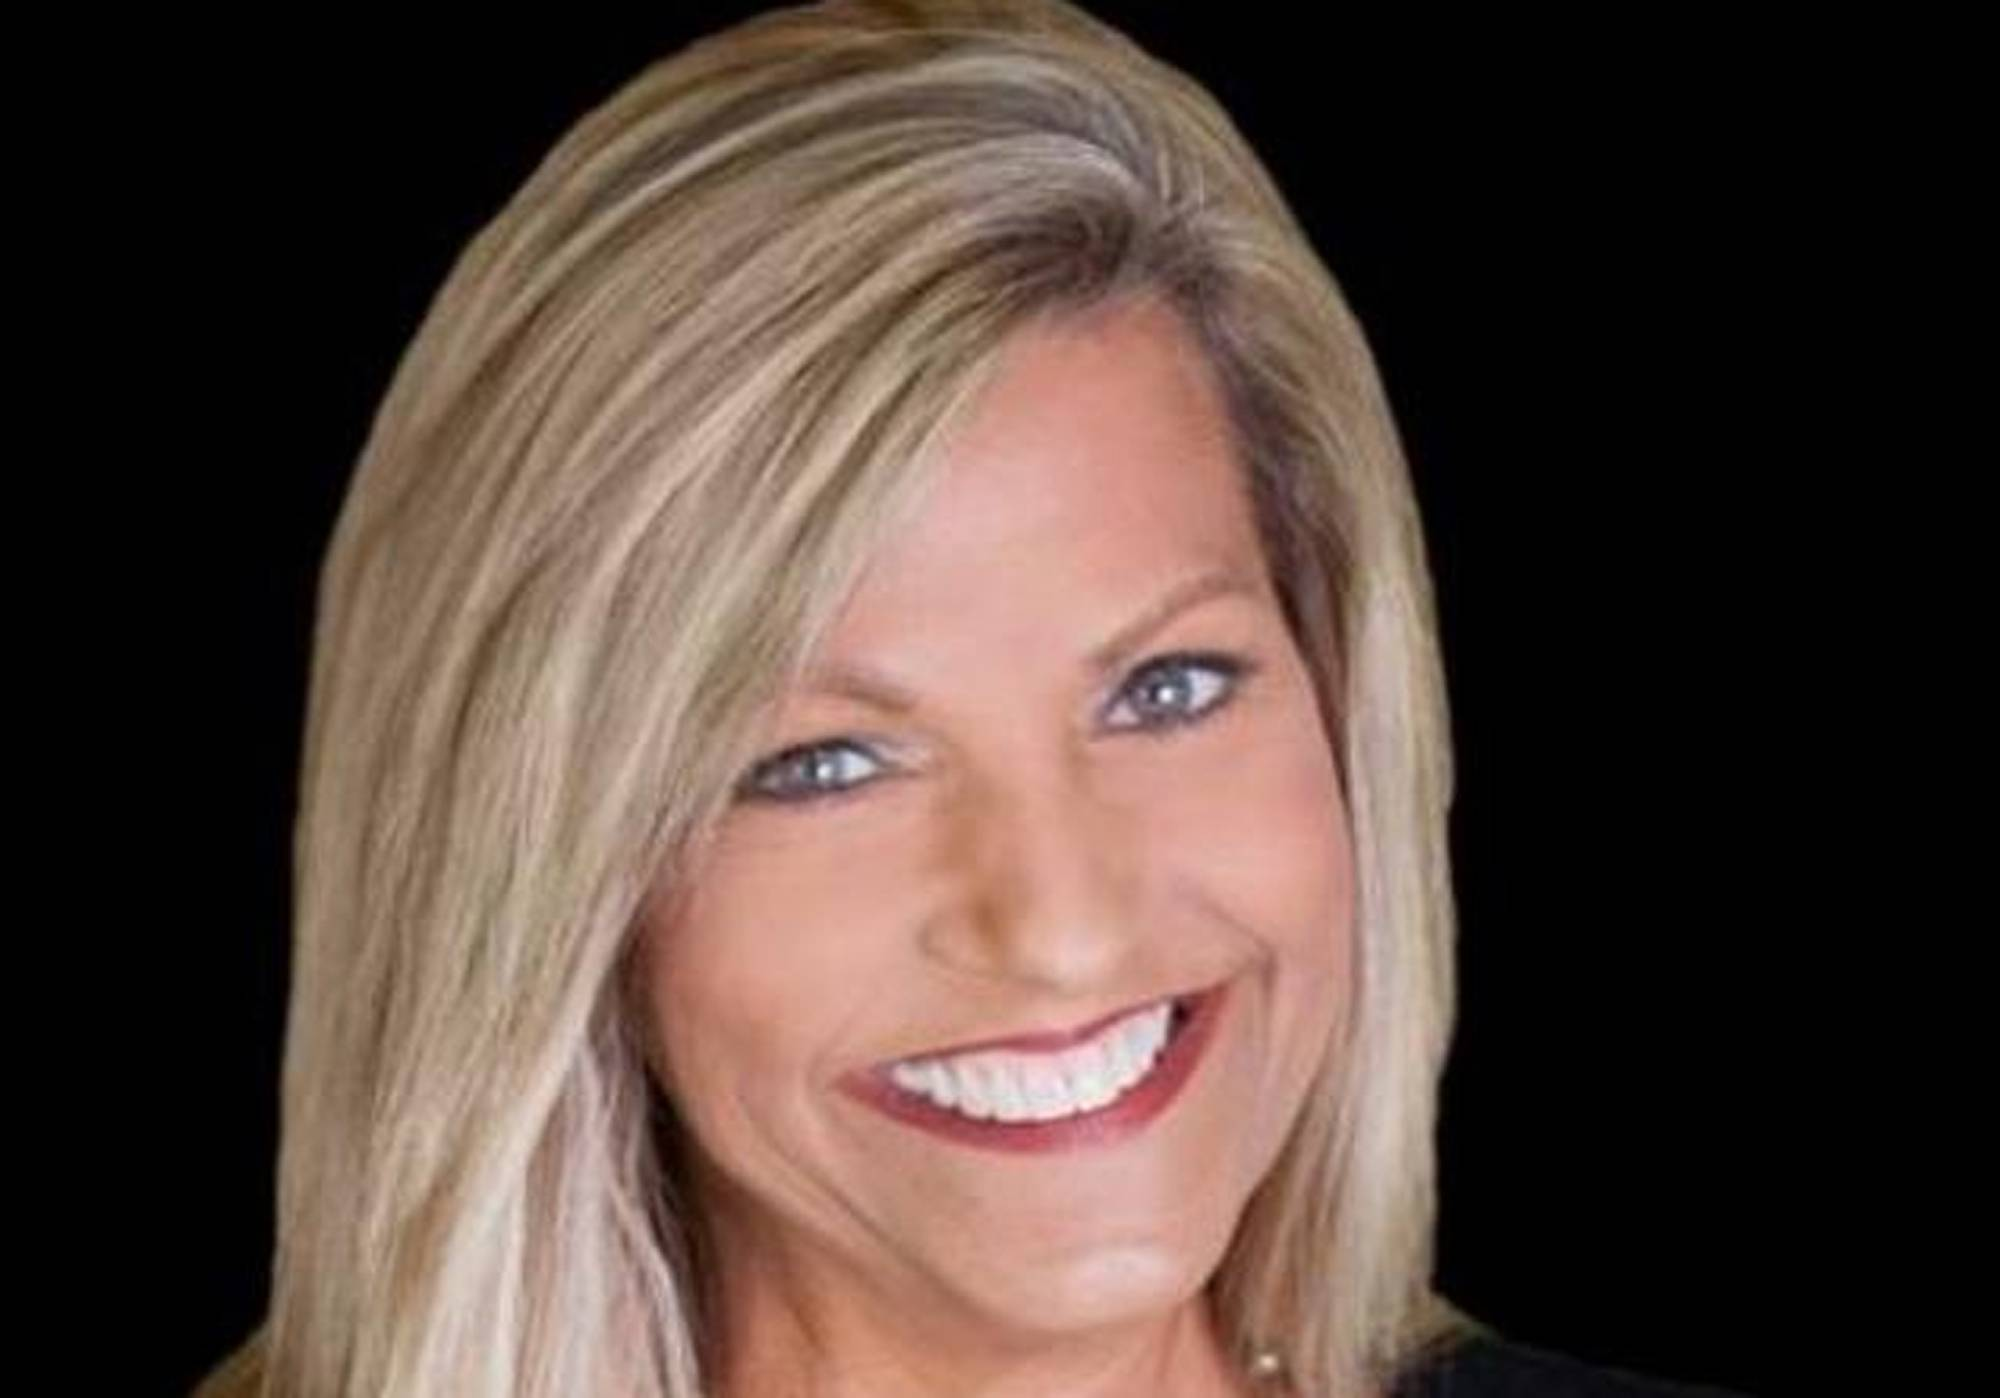 Police discovered the body of Arkansas real estate agent Beverly Carter early Tuesday, Sept. 30, 2014, in a shallow grave at a concrete company, about 25 miles northeast of Little Rock, Ark. Carter had been missing since Thursday.